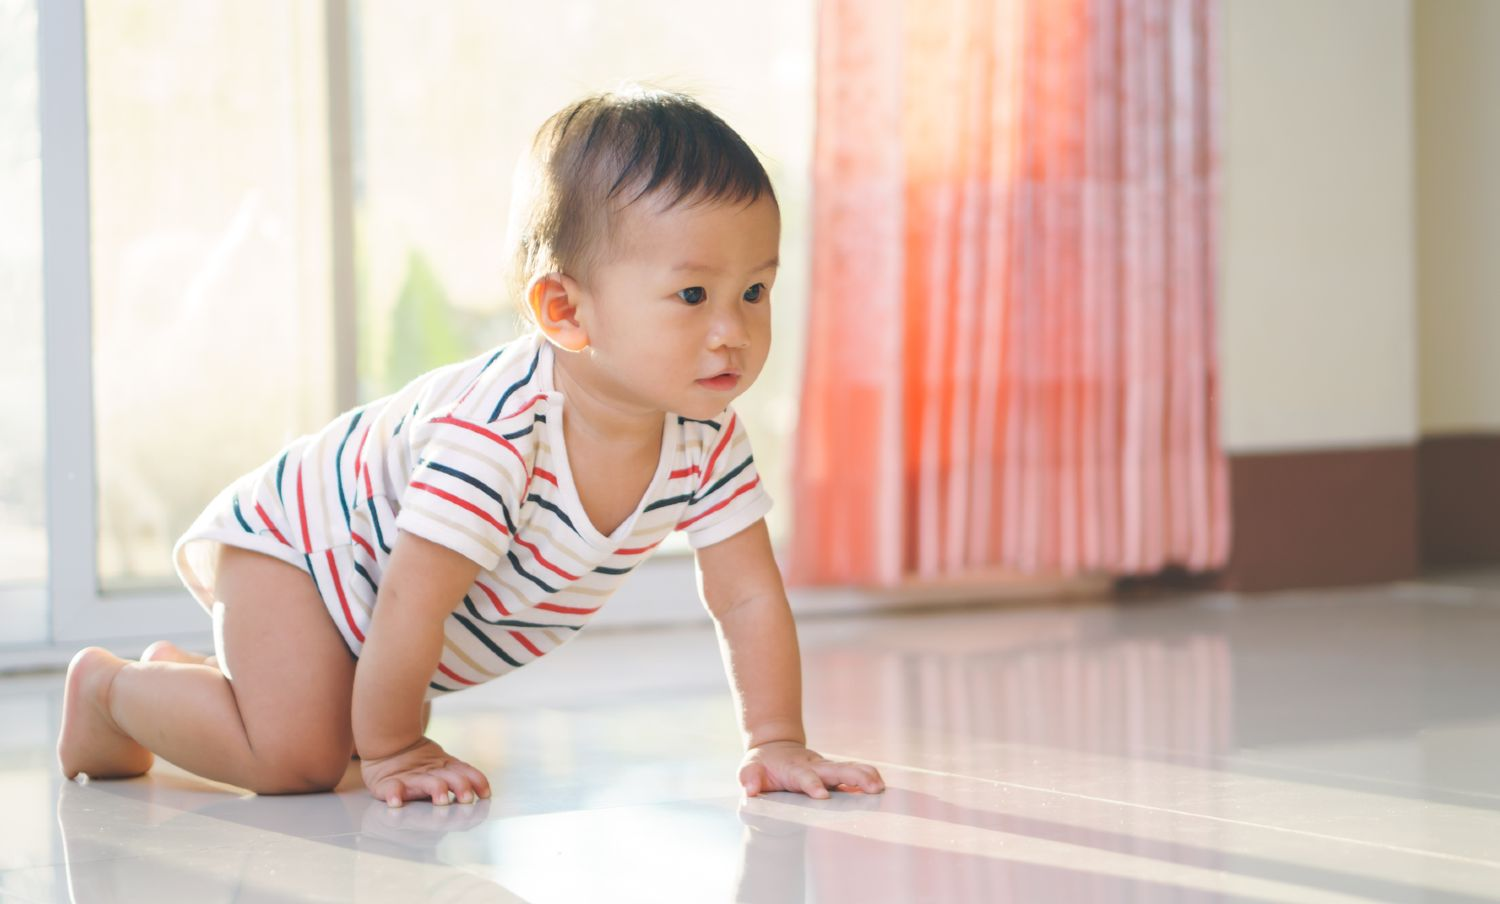 Baby crawling across the floor